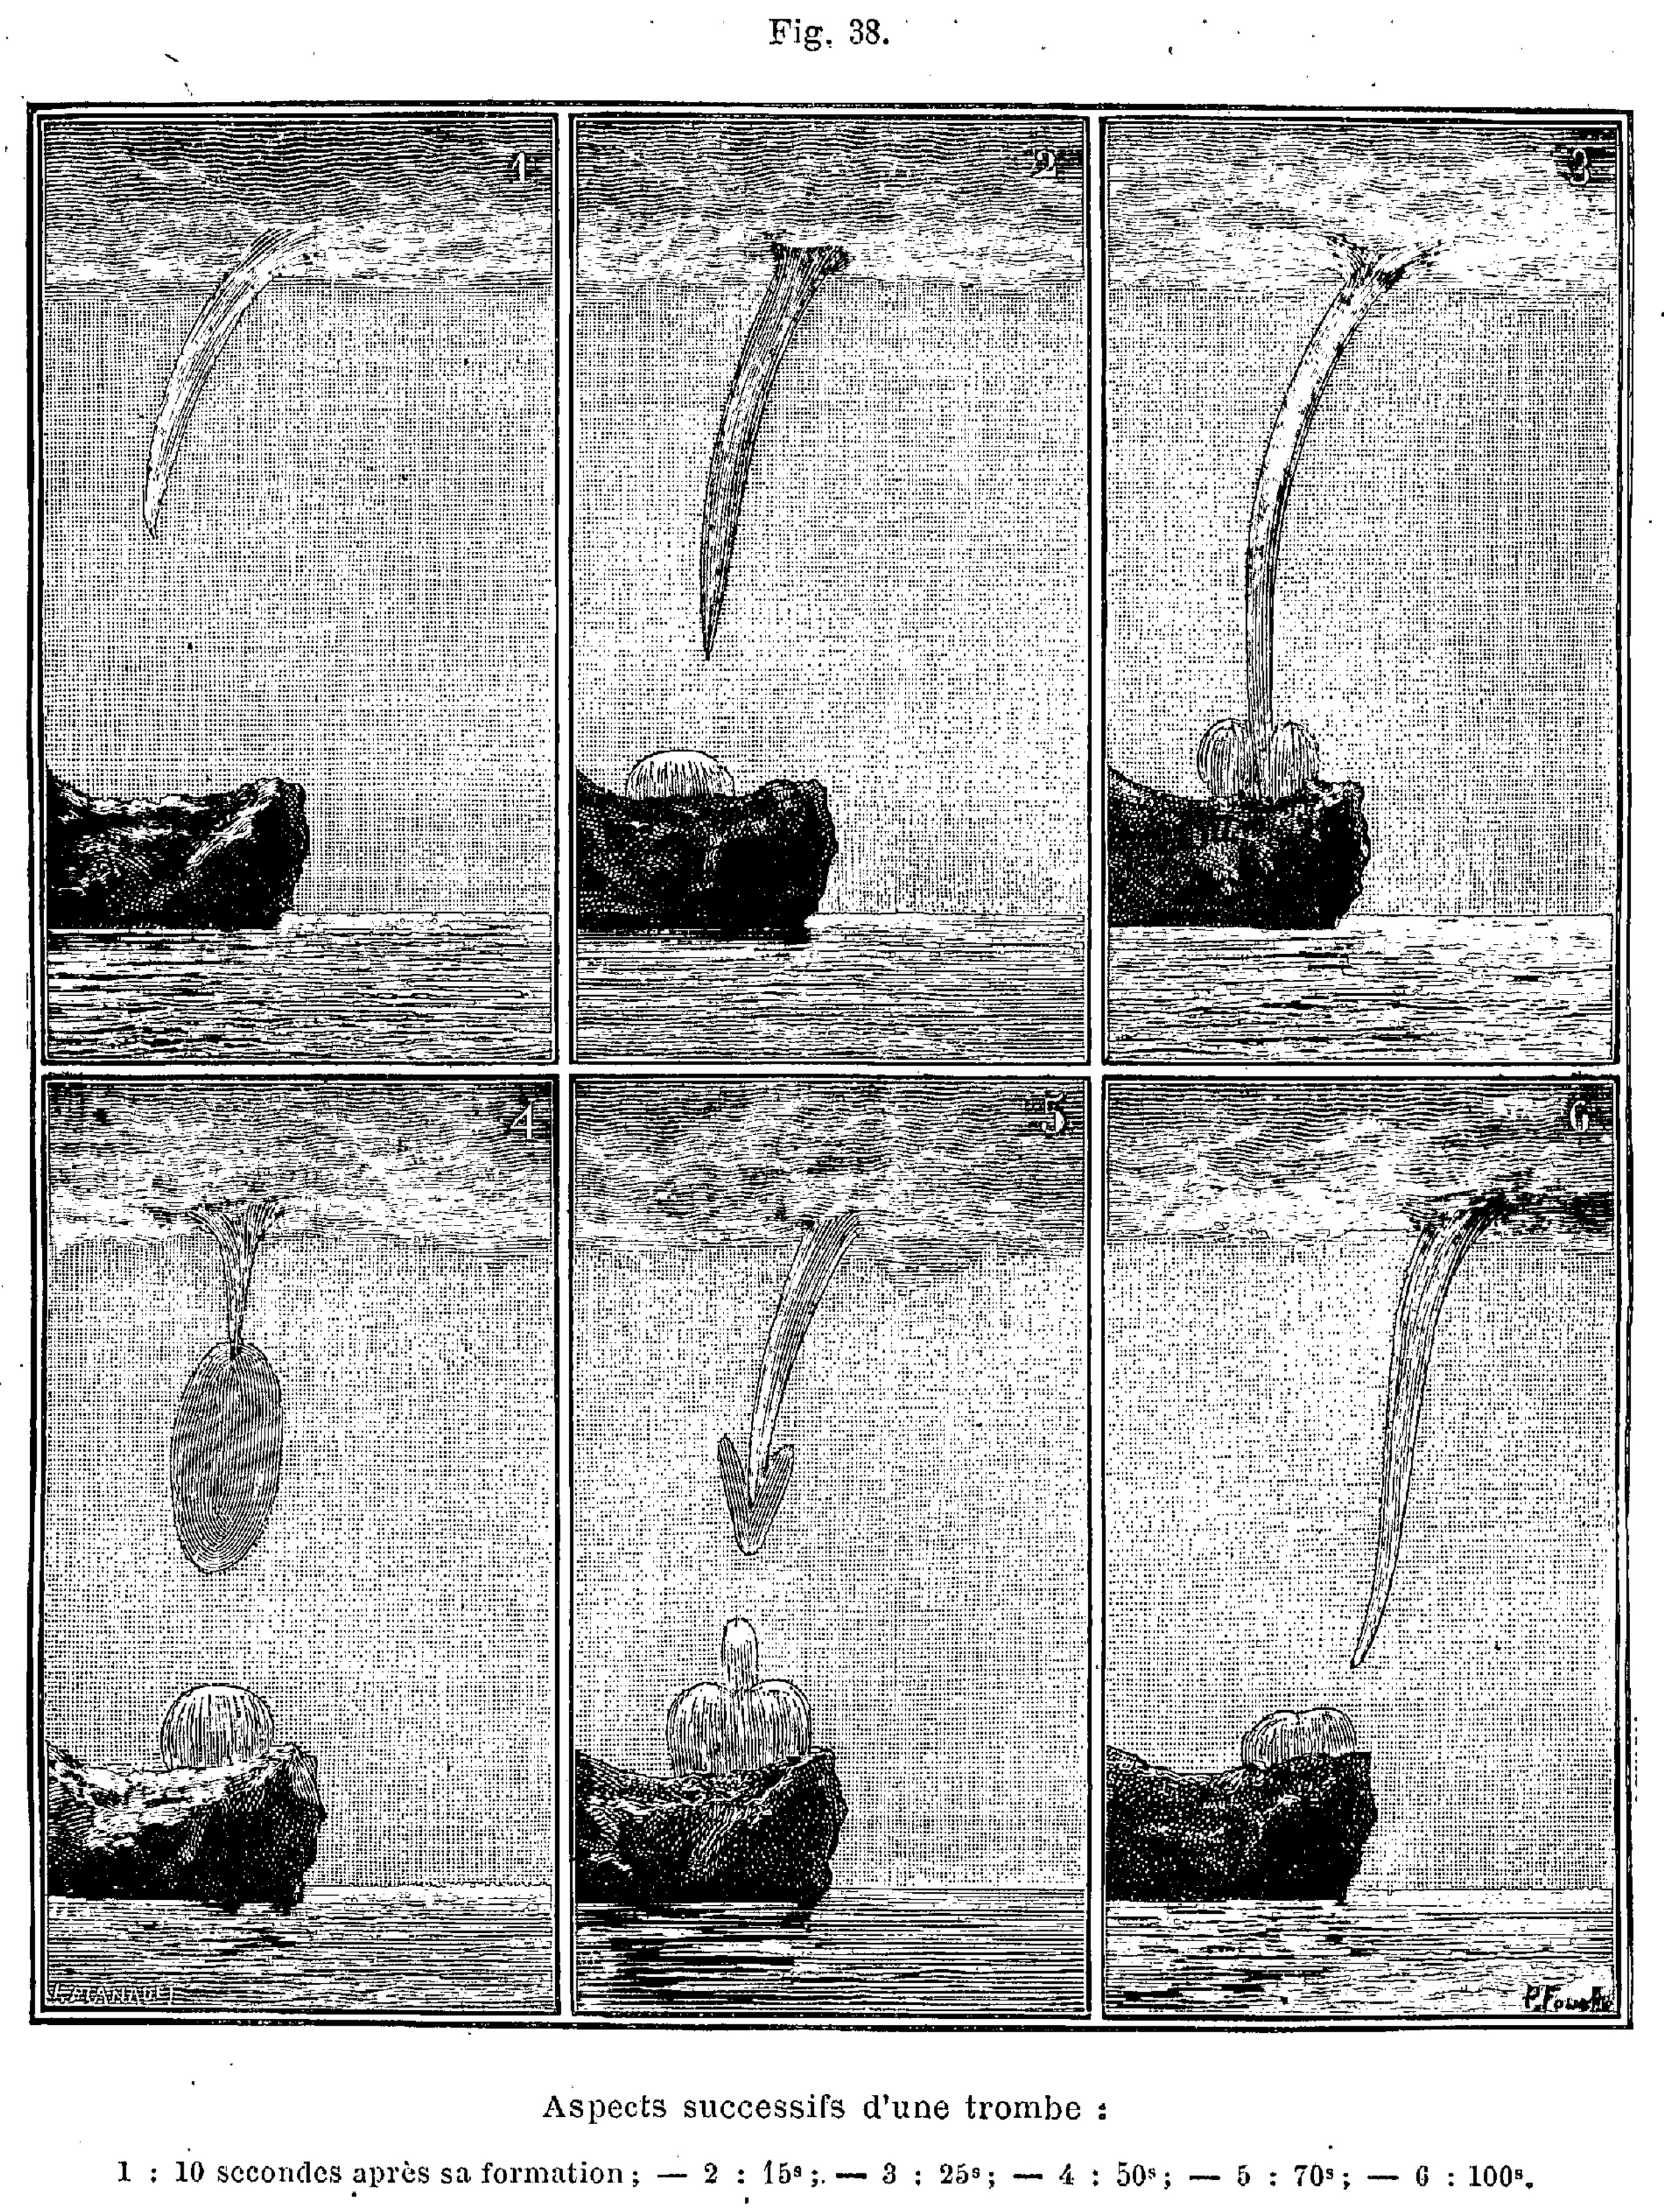 "The evolution of one of the five waterspouts observed by Mr. Léotard and Payan, members of  the Flammarion Scientific Society , on 17 September 1887 at 5:30 pm south of Marseille toward  Planier Lighthouse  and  Cap Croisette .  source: Fig. 38 from ""Trombes observ é es sur la mer"".   L'Astronomie  ,  Tome VII , p. 73 – 75. via   BnF Gallica"